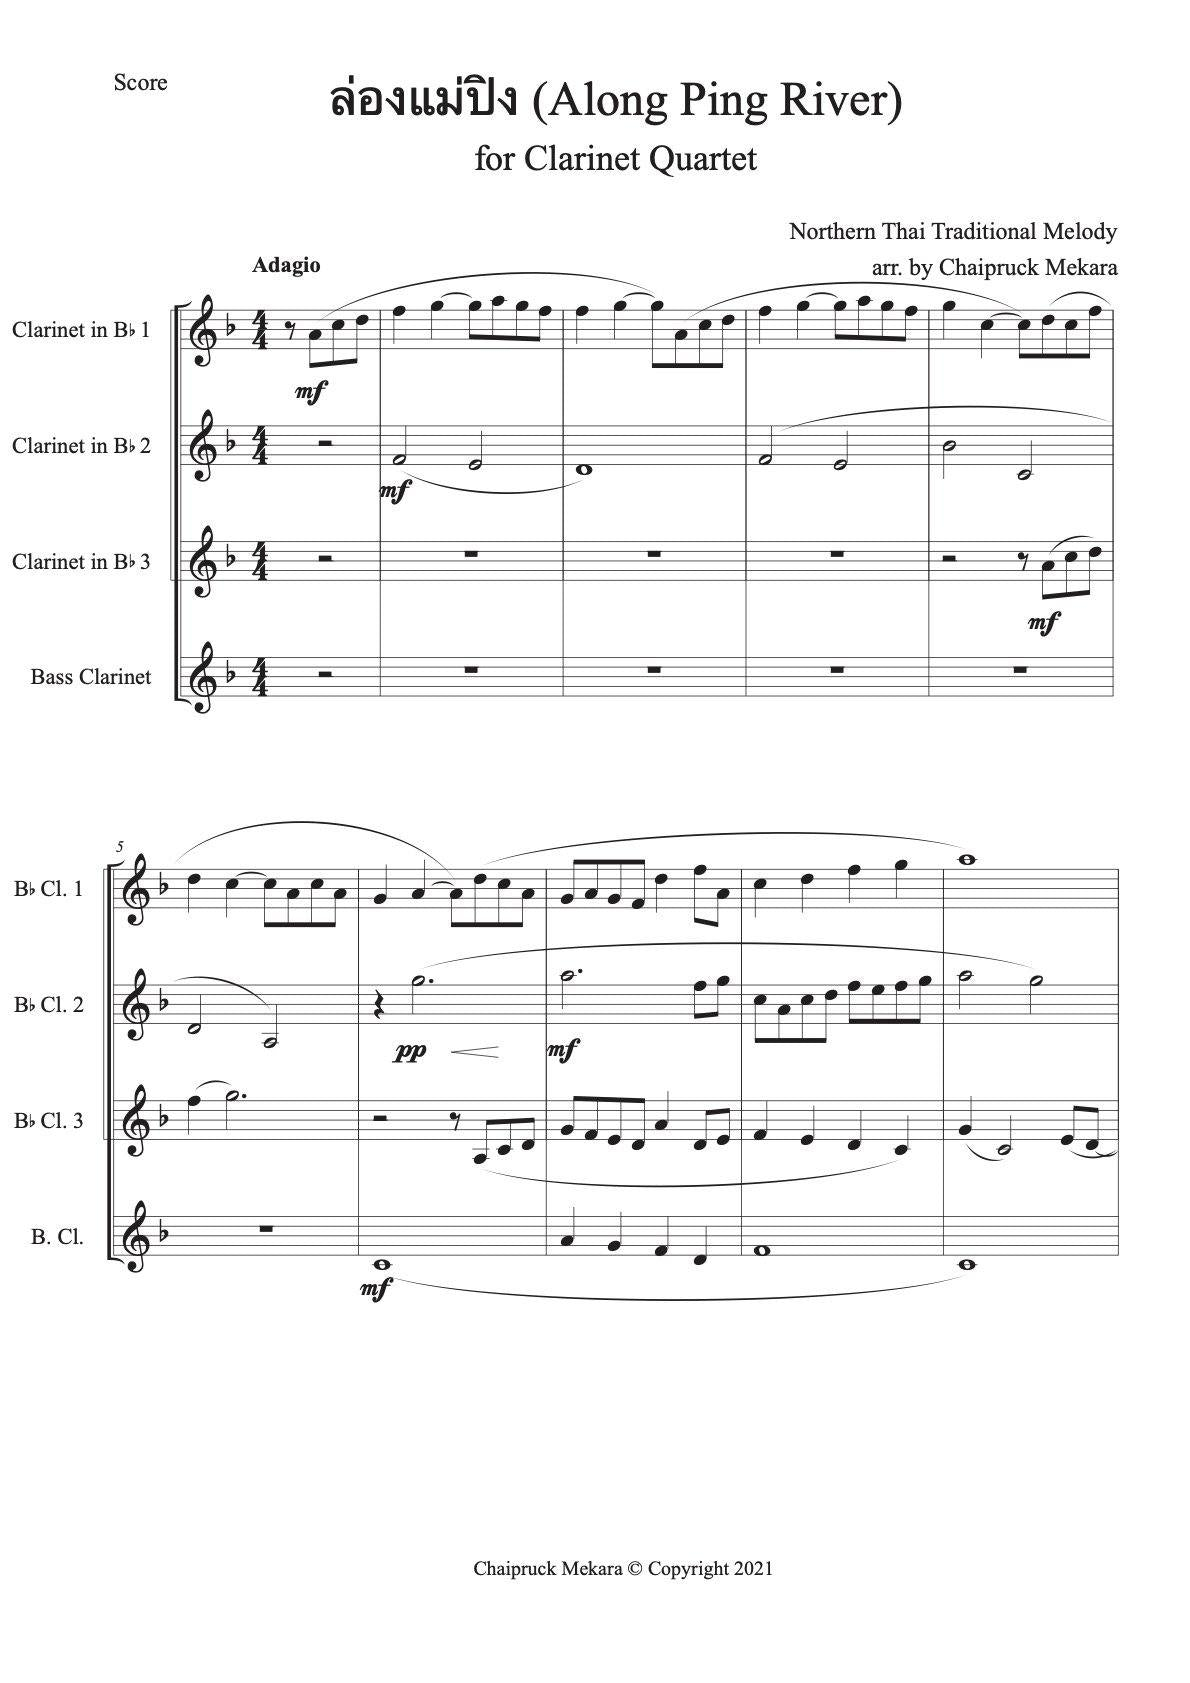 Along Ping River for Clarinet Quartet (Score + Parts) - ChaipruckMekara